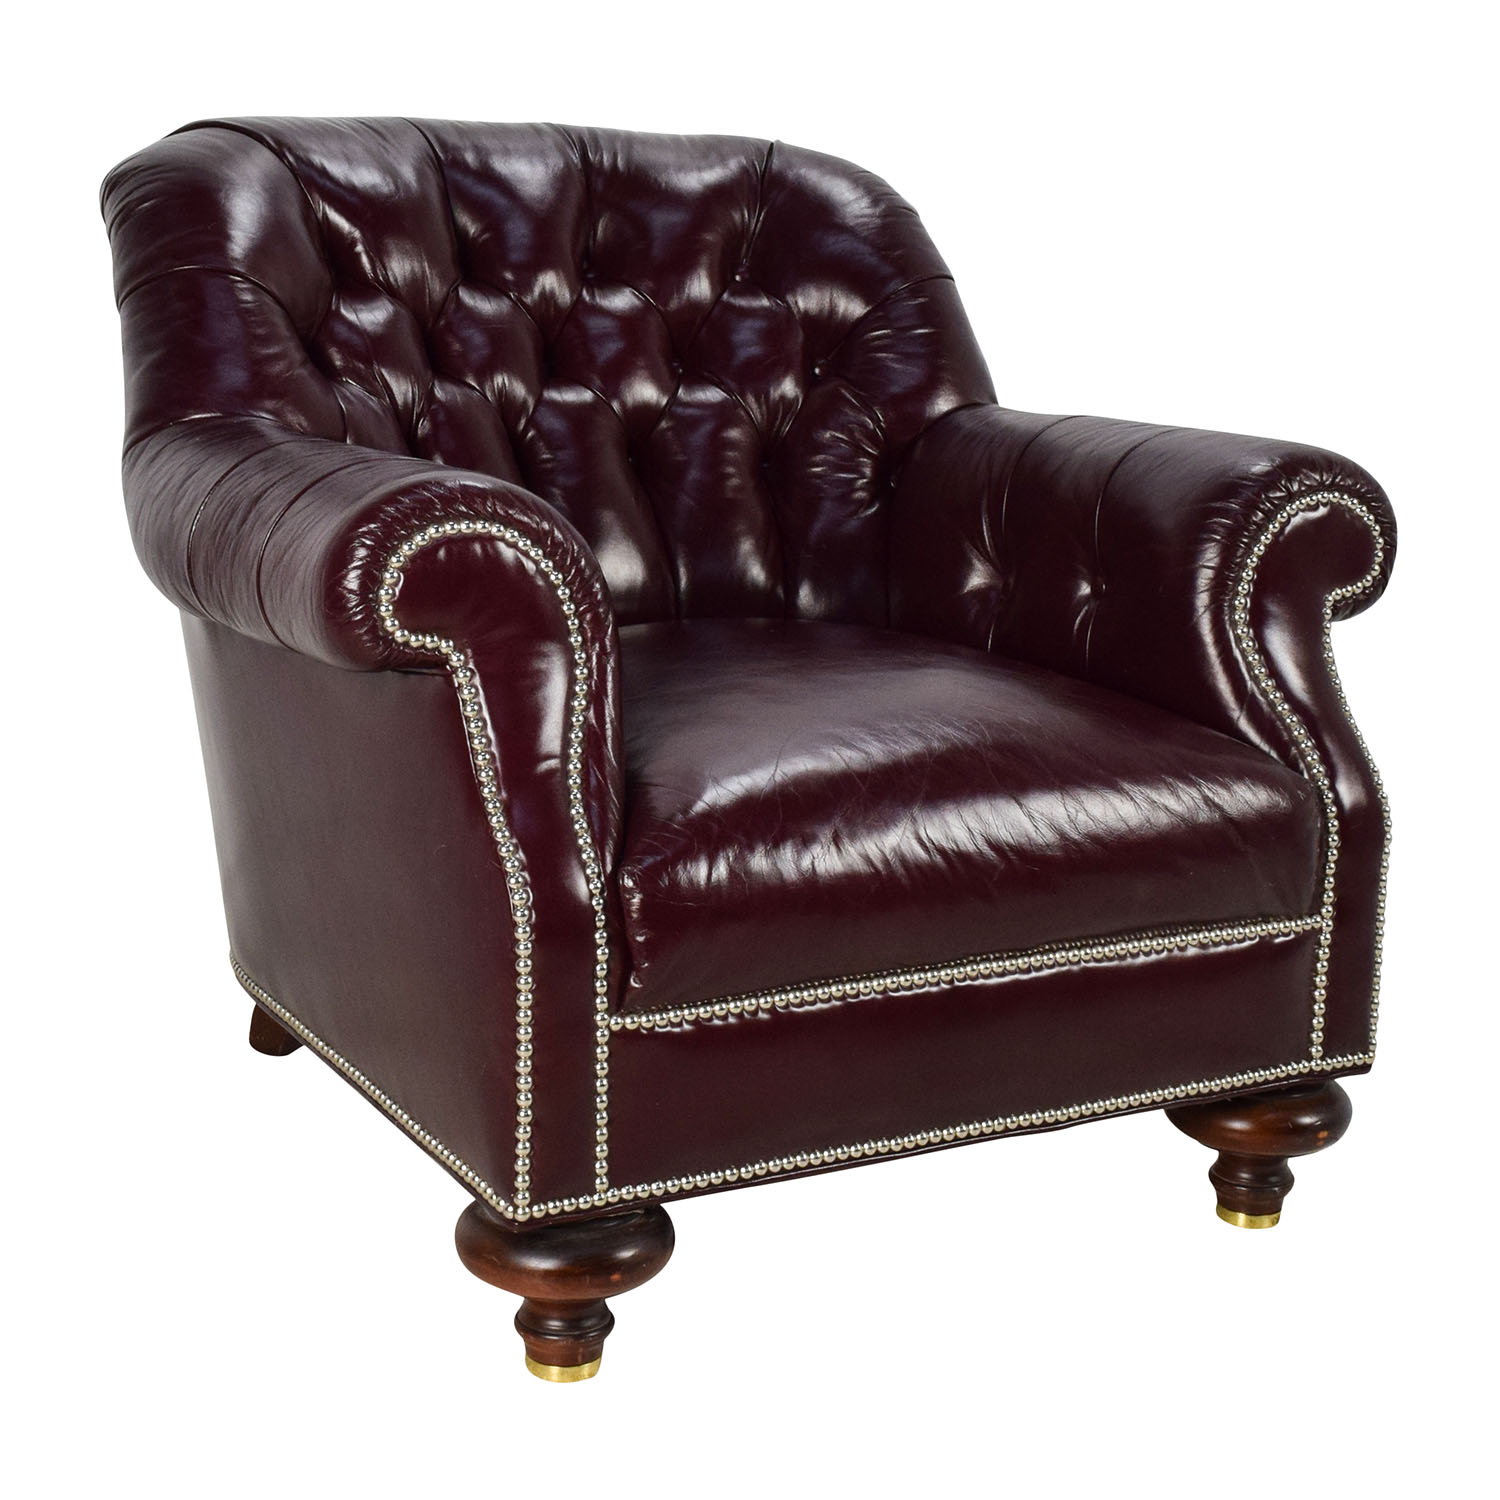 90 OFF  Baker Furniture Baker Tufted Leather Lounge Chair  Chairs